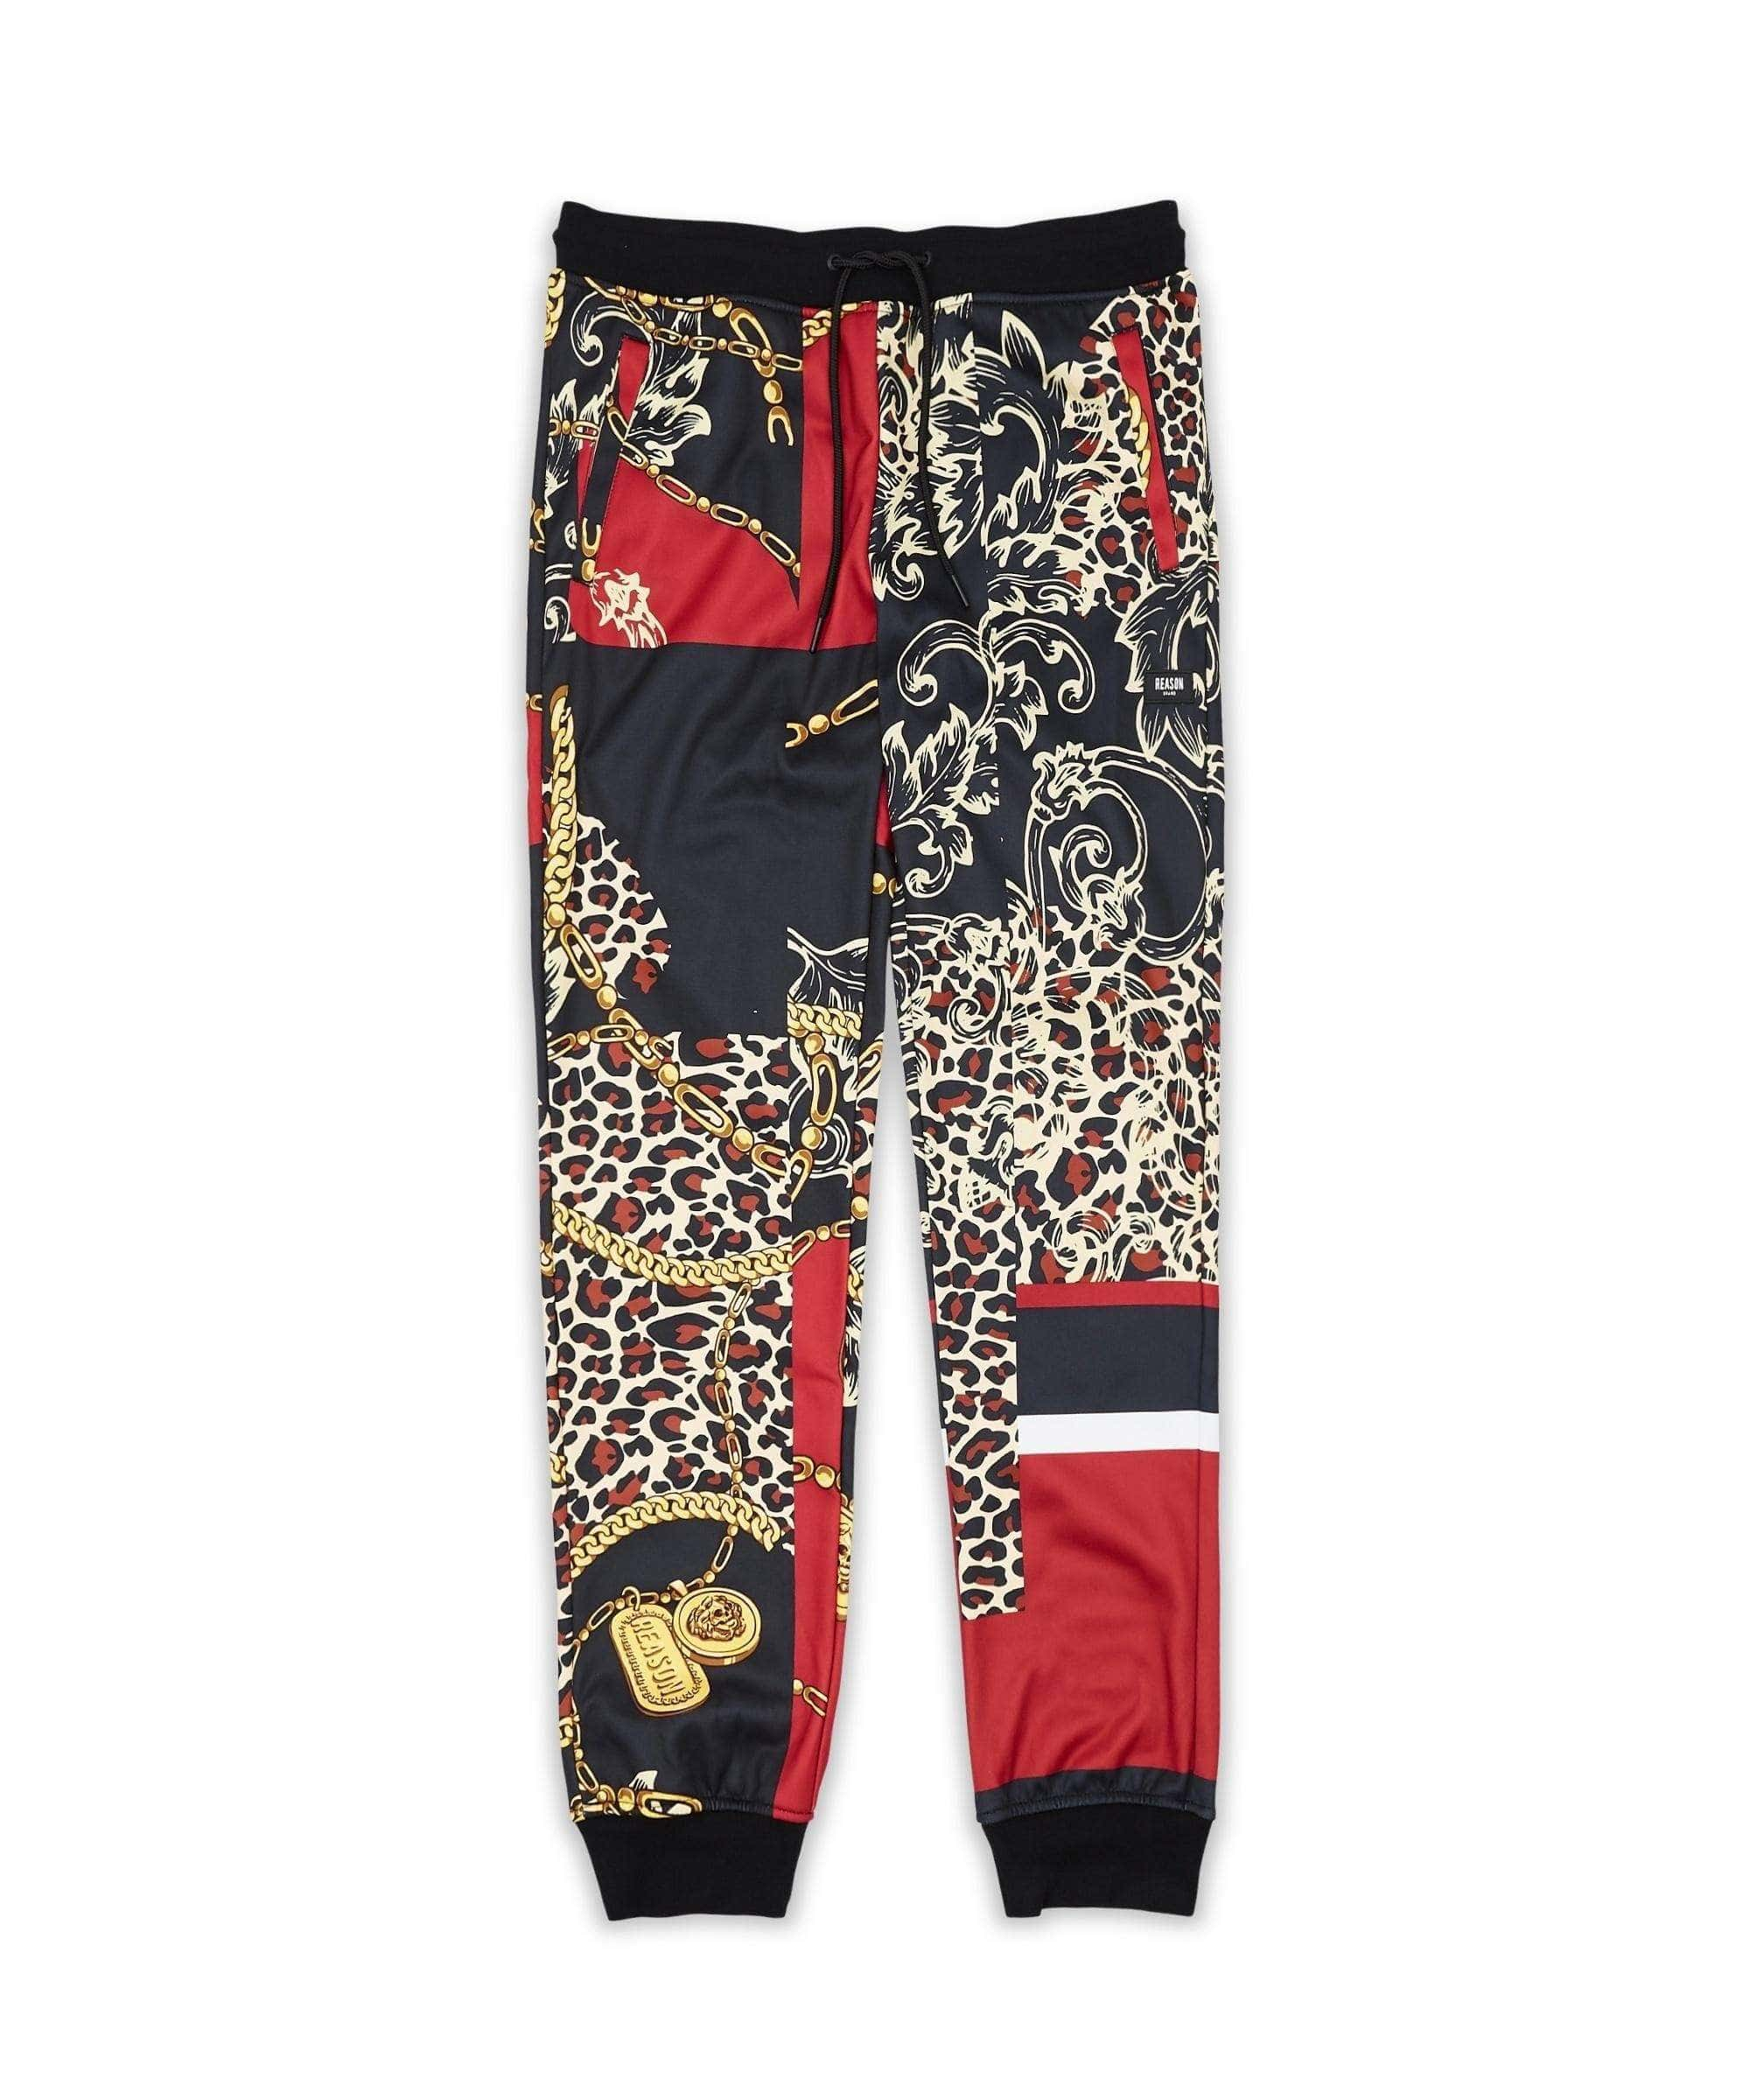 TRUE LOVE SWEAT PANTS Reason Clothing